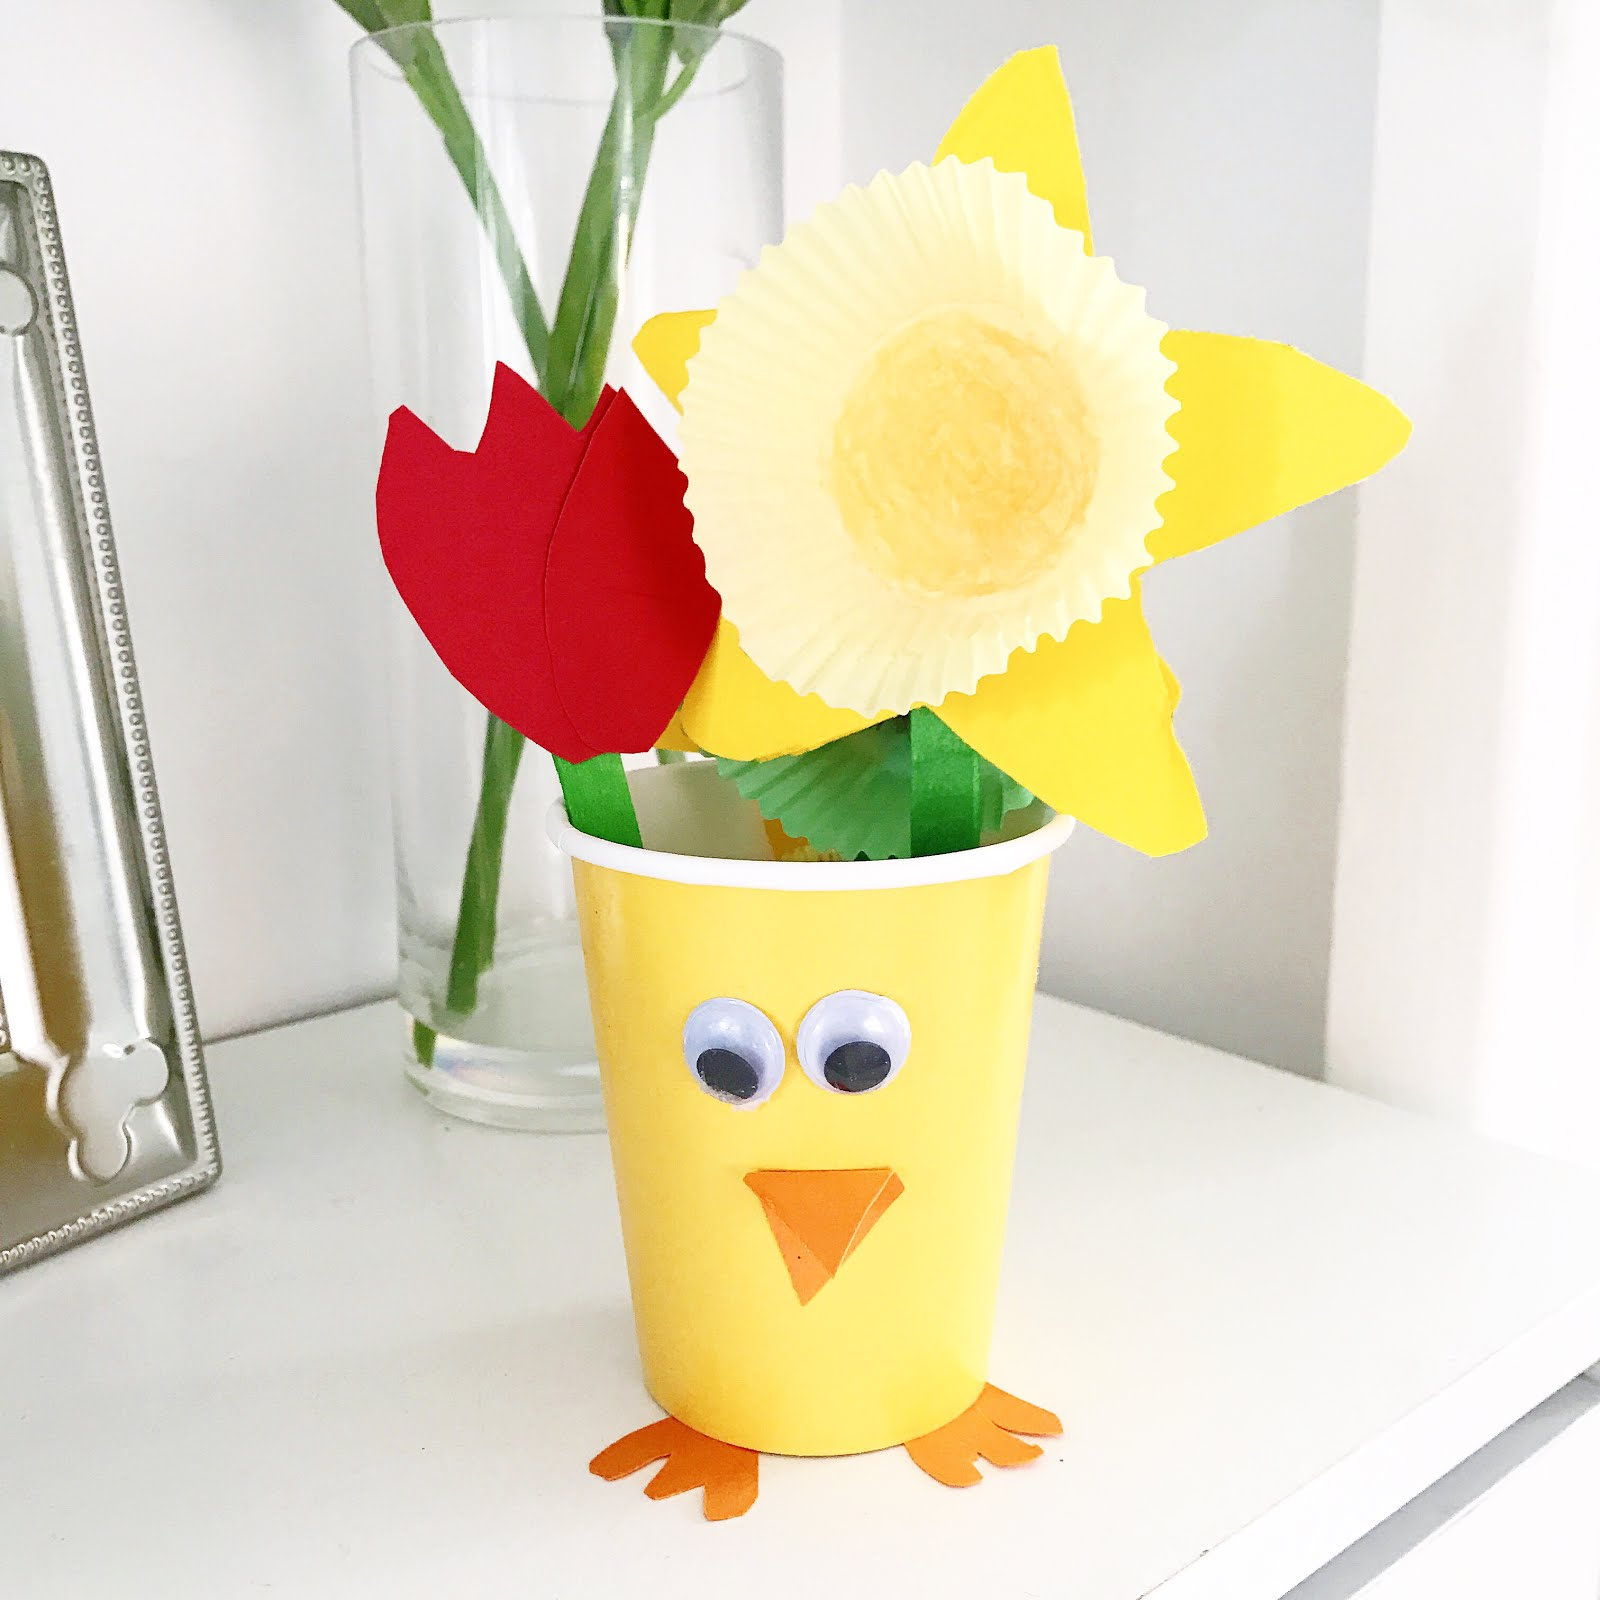 Easter crafts, daffodil craft. tulip craft